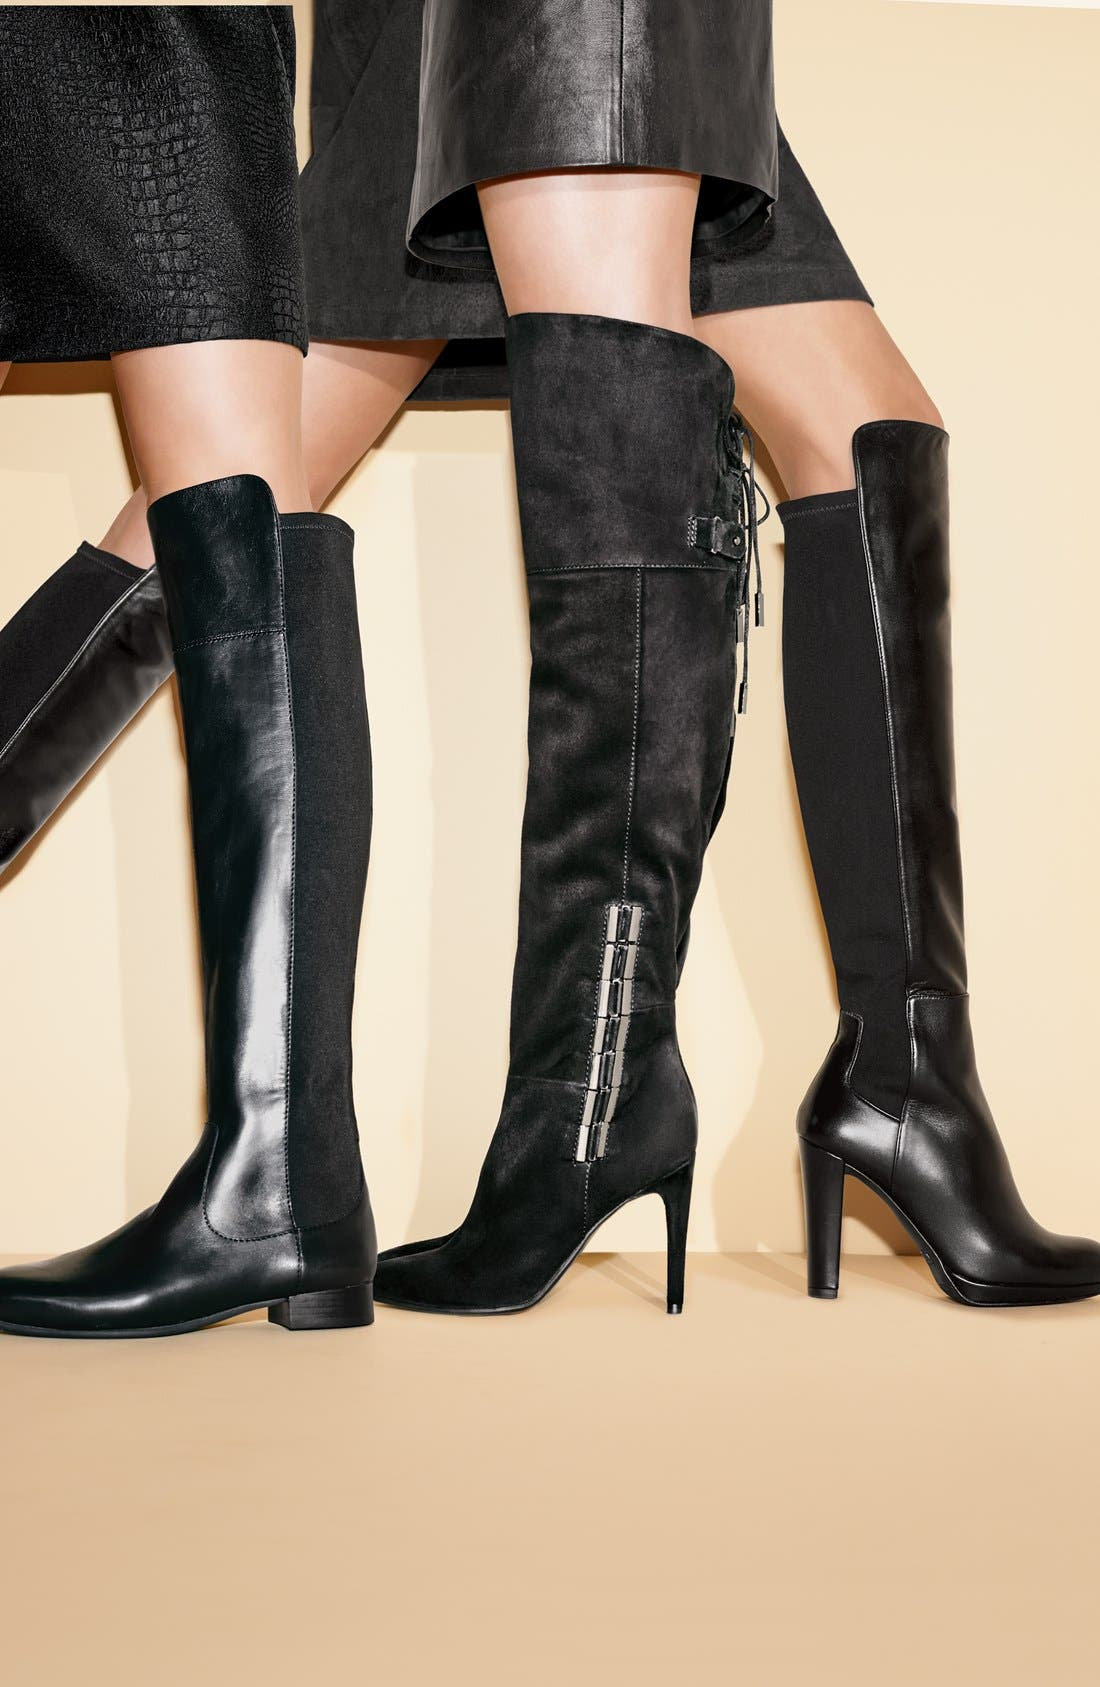 LOUISE ET CIE,                             'Andora' Over the Knee Boot,                             Alternate thumbnail 5, color,                             002